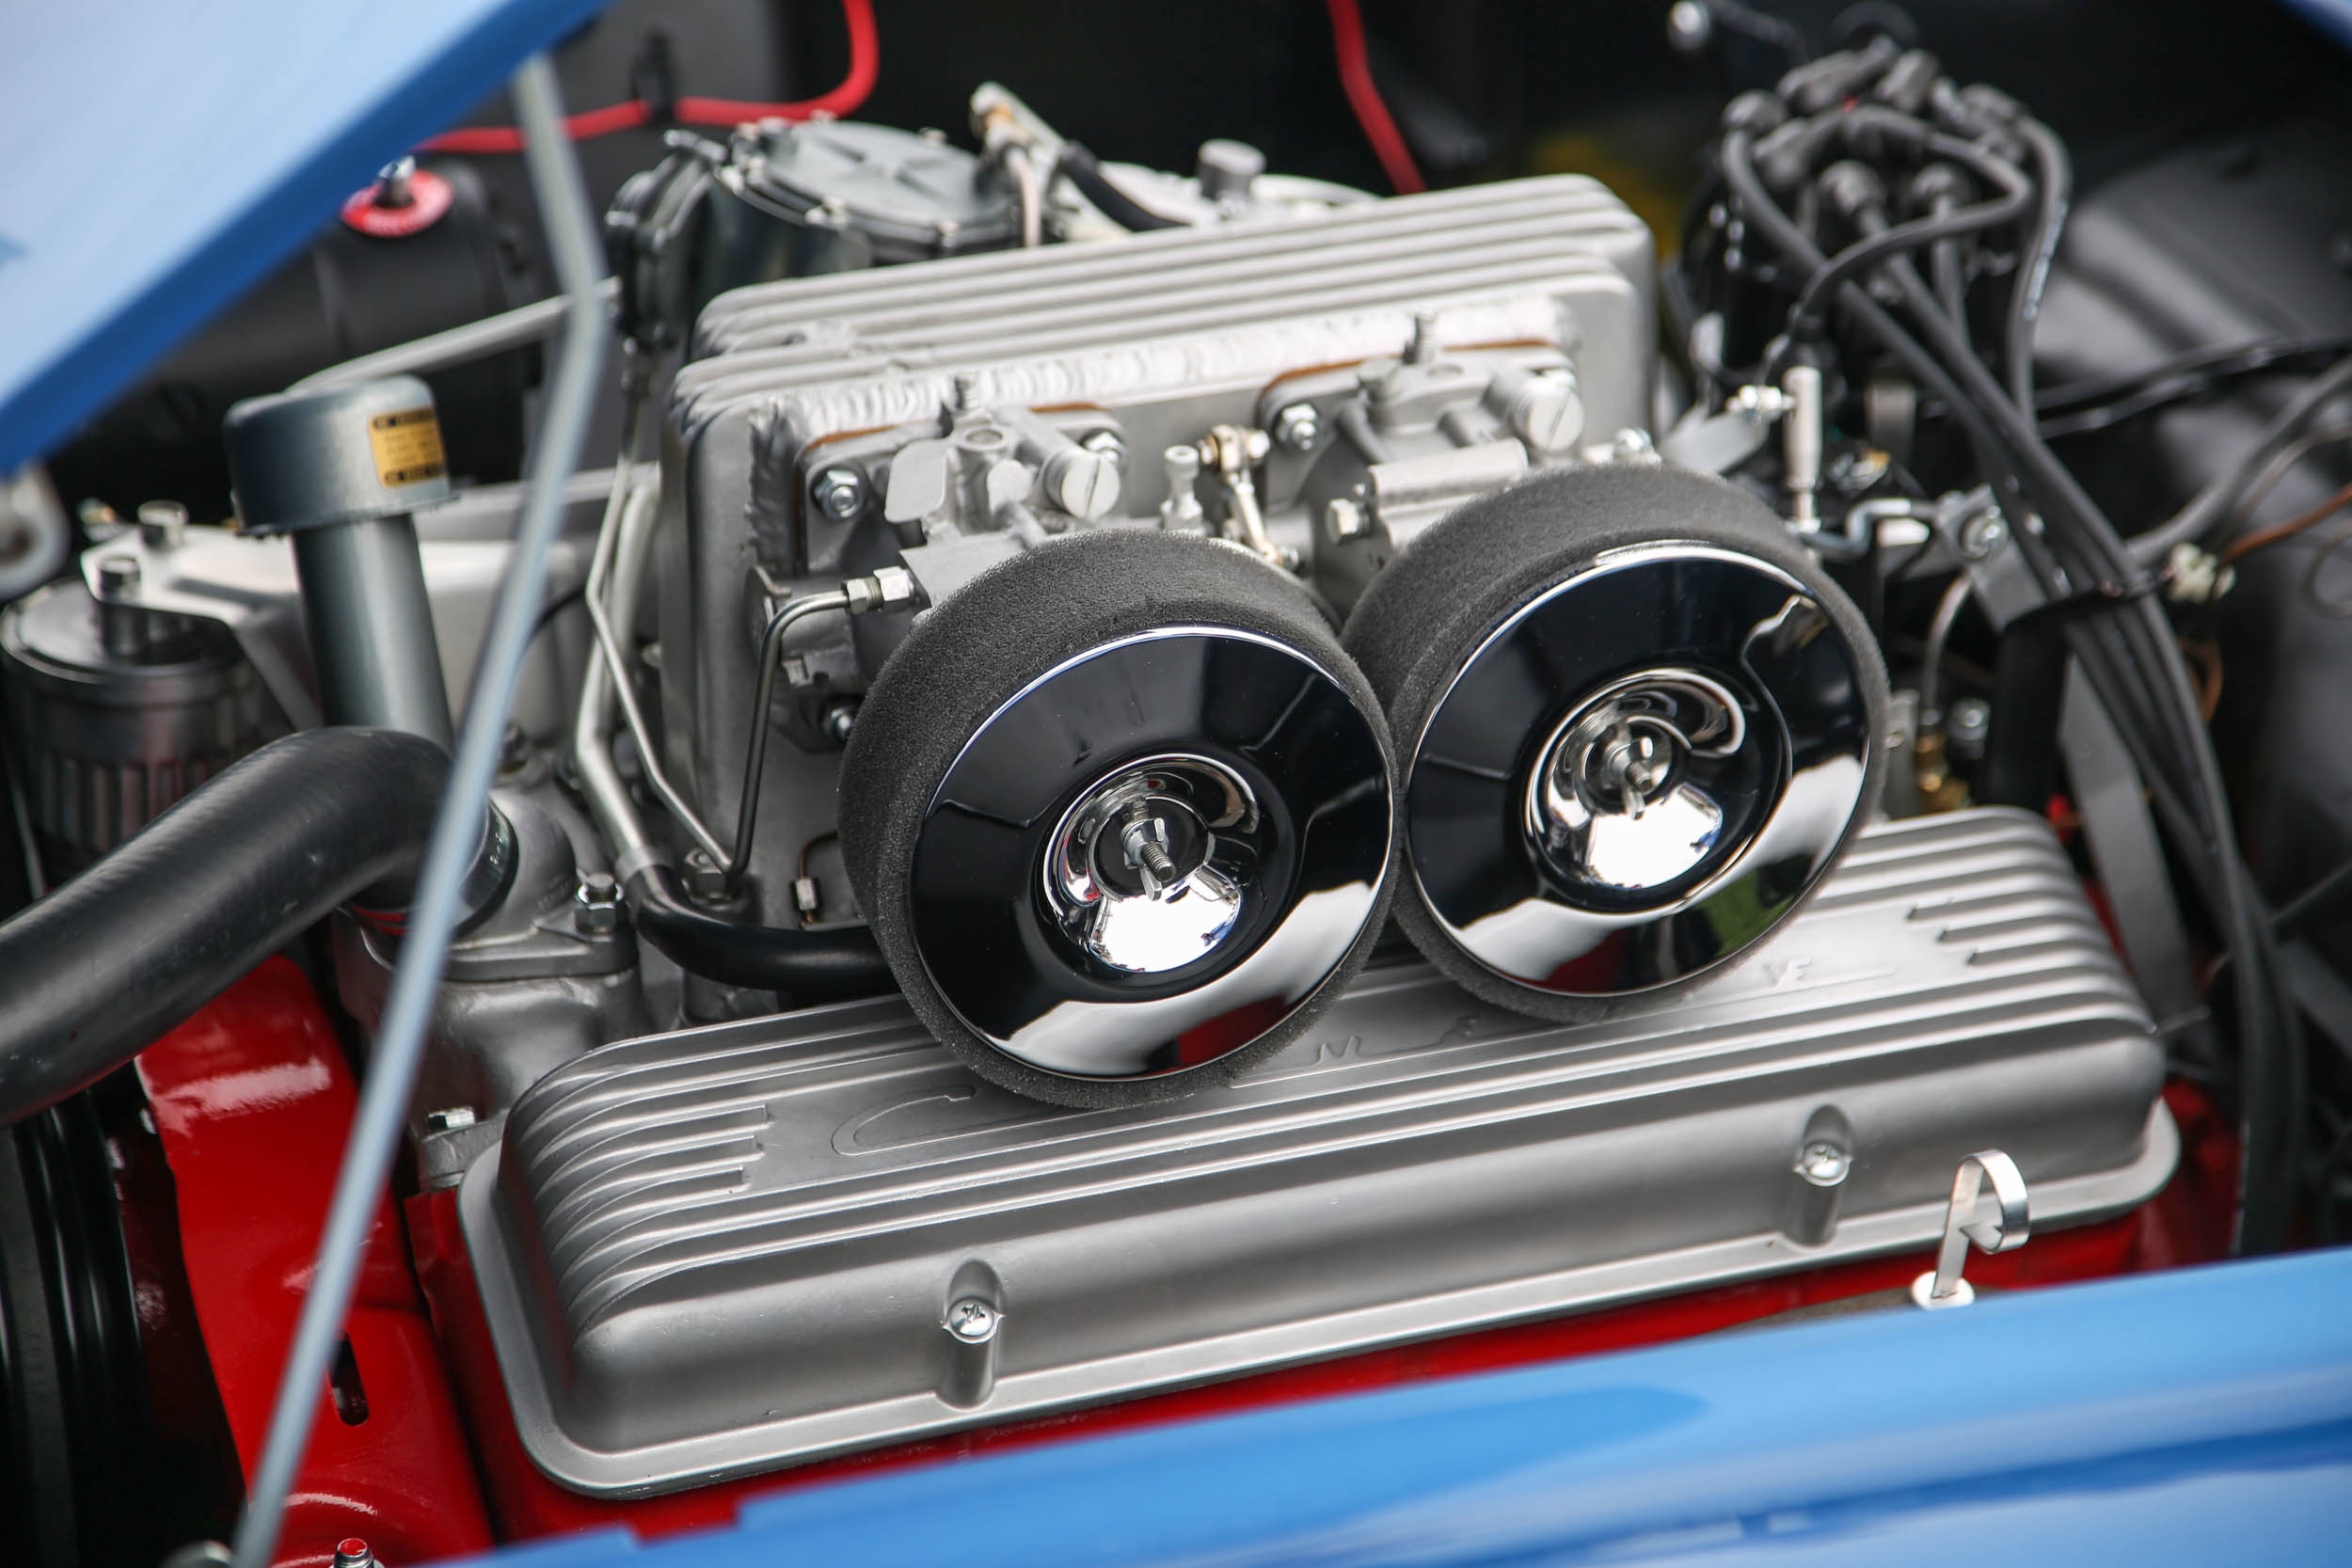 Chevrolet's Rochester mechanical fuel injection system that debuted for the 1957 model year was developed on the Corvette SR-2. This engine is wearing an intake modified to accept twin throttle bodies, while the factory offering used only one.